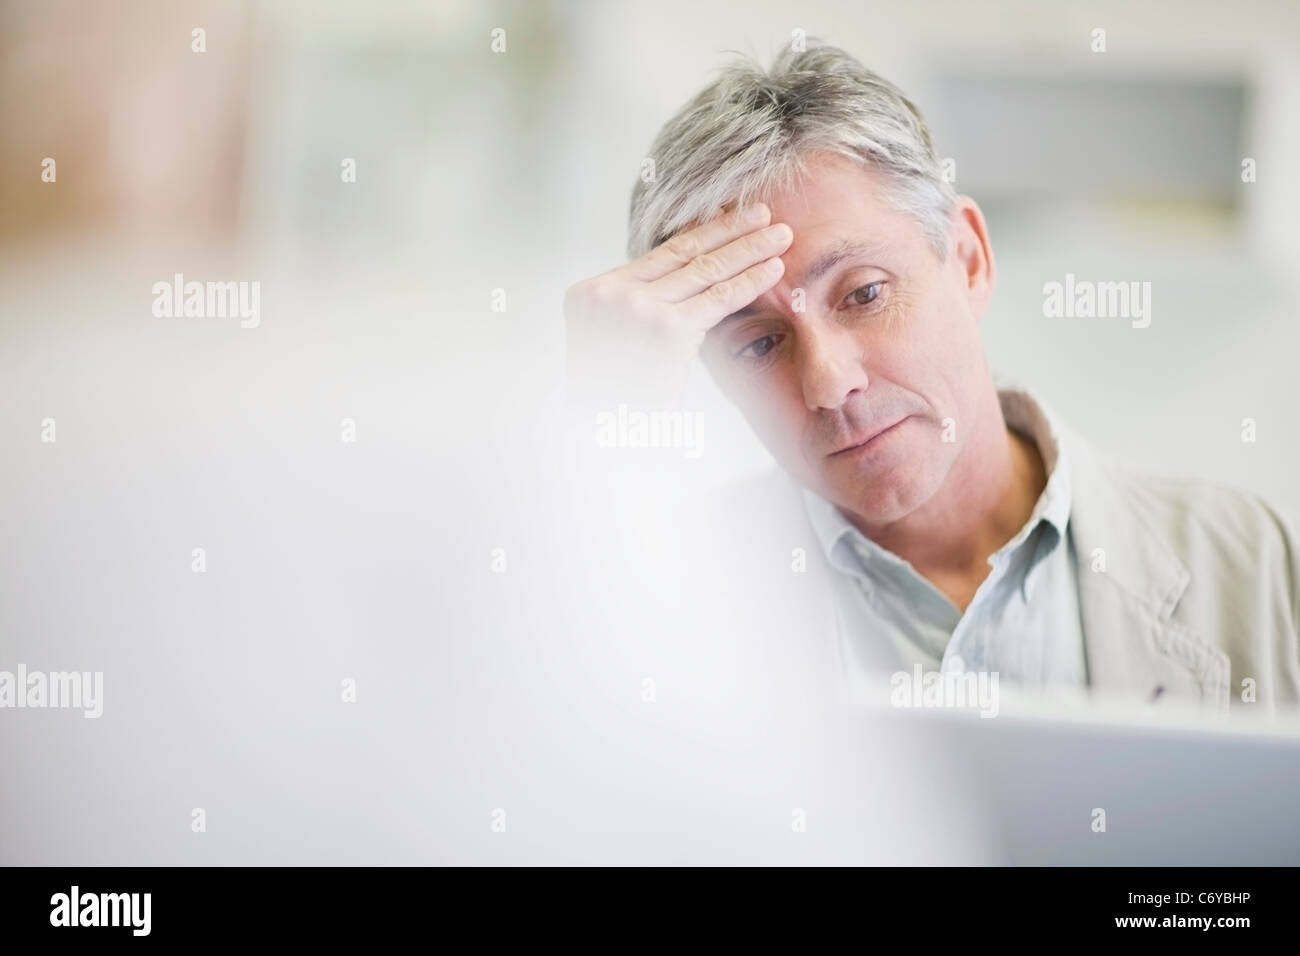 Stressed businessman working in office - Stock Image